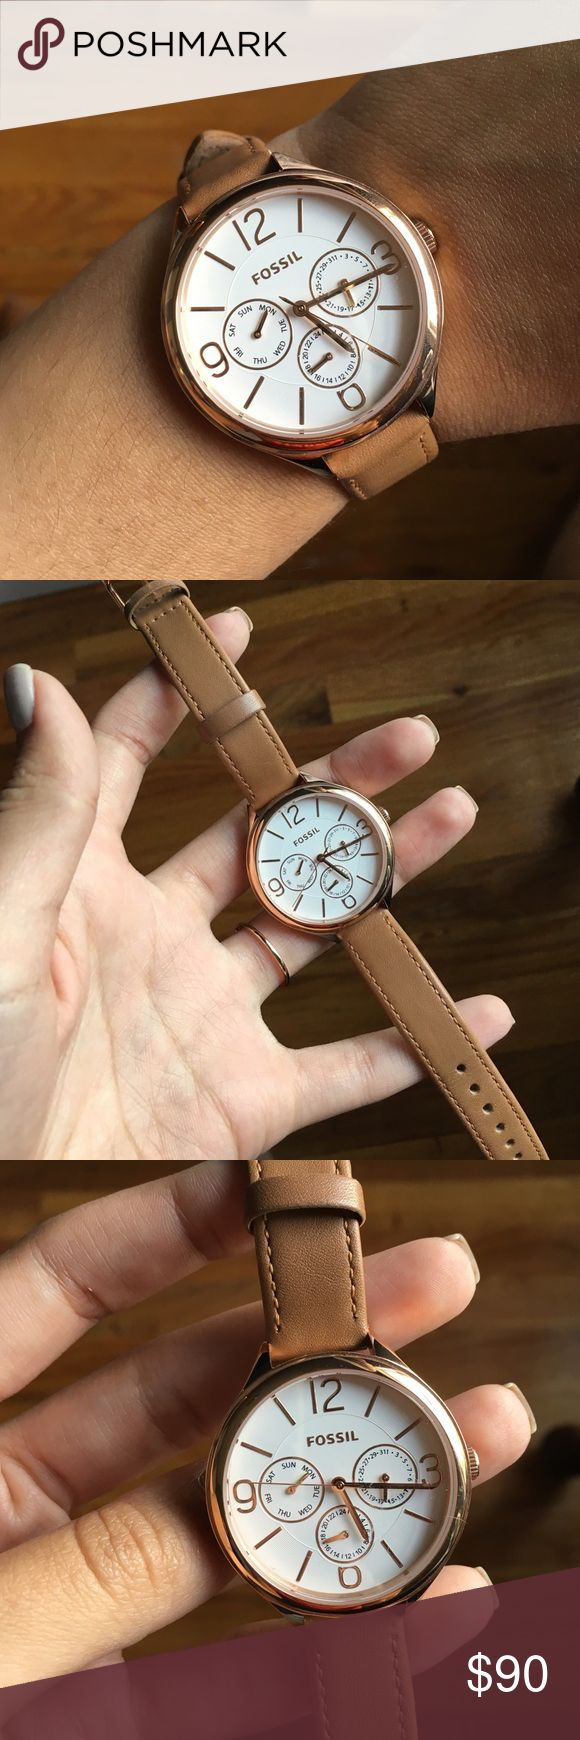 Fossil Watch Women's Fossil watch in style number BQ3118. Only worn twice, perfect condition. Chronograph style, with the date and military time feature. Rose gold hardware and 14mm leather strap. Fossil Accessories Watches